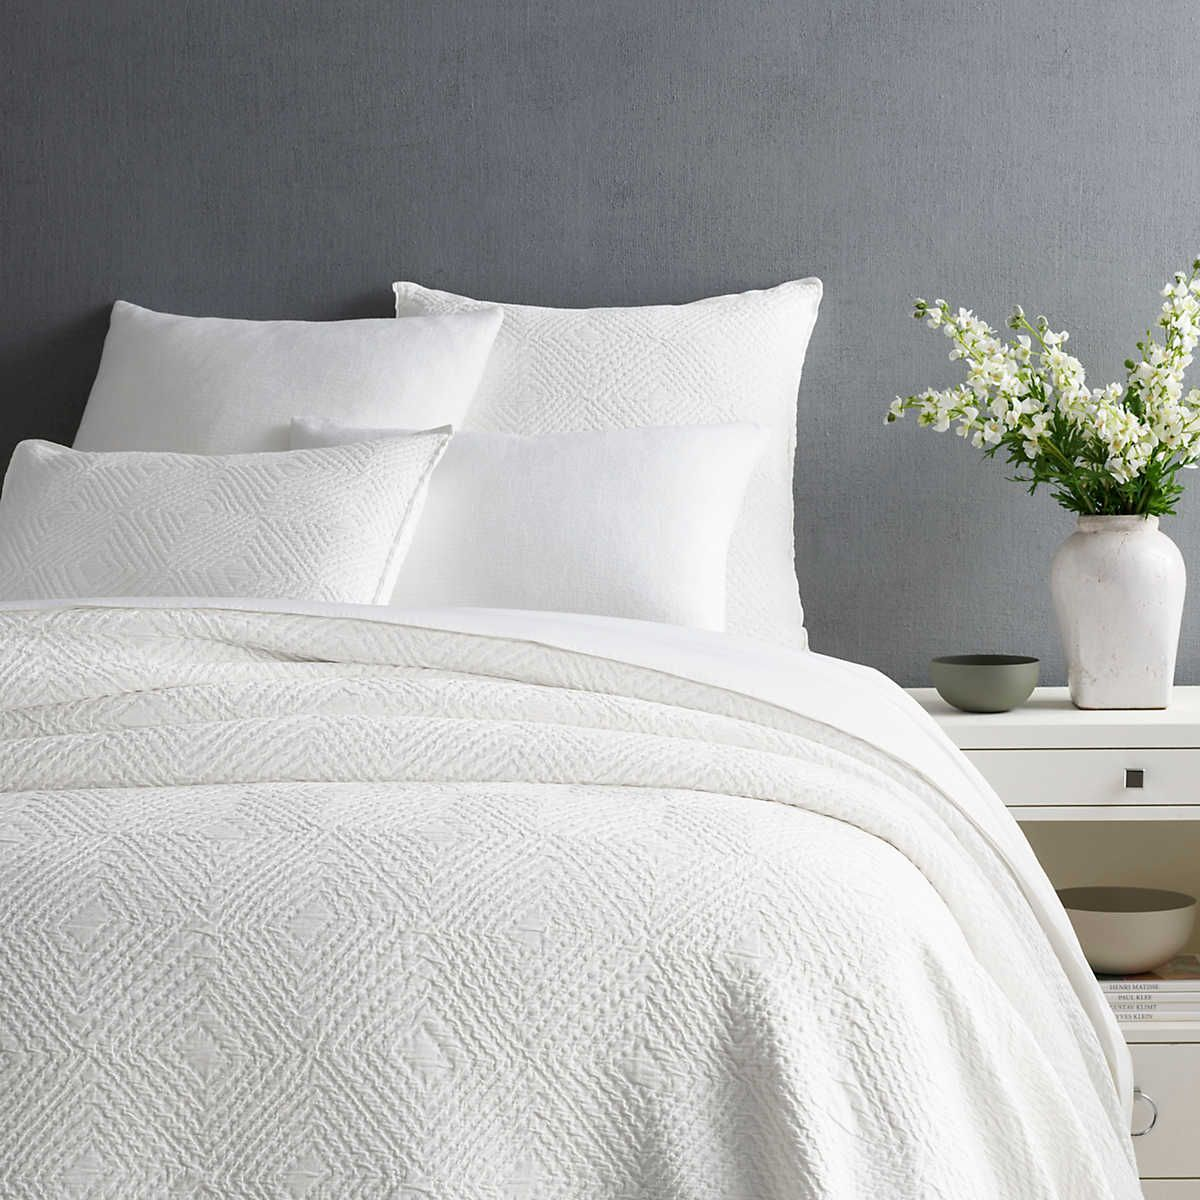 Kerala White Matelasse Coverlet Pine Cone Hill White Coverlet Single Quilt White Quilt Bedding